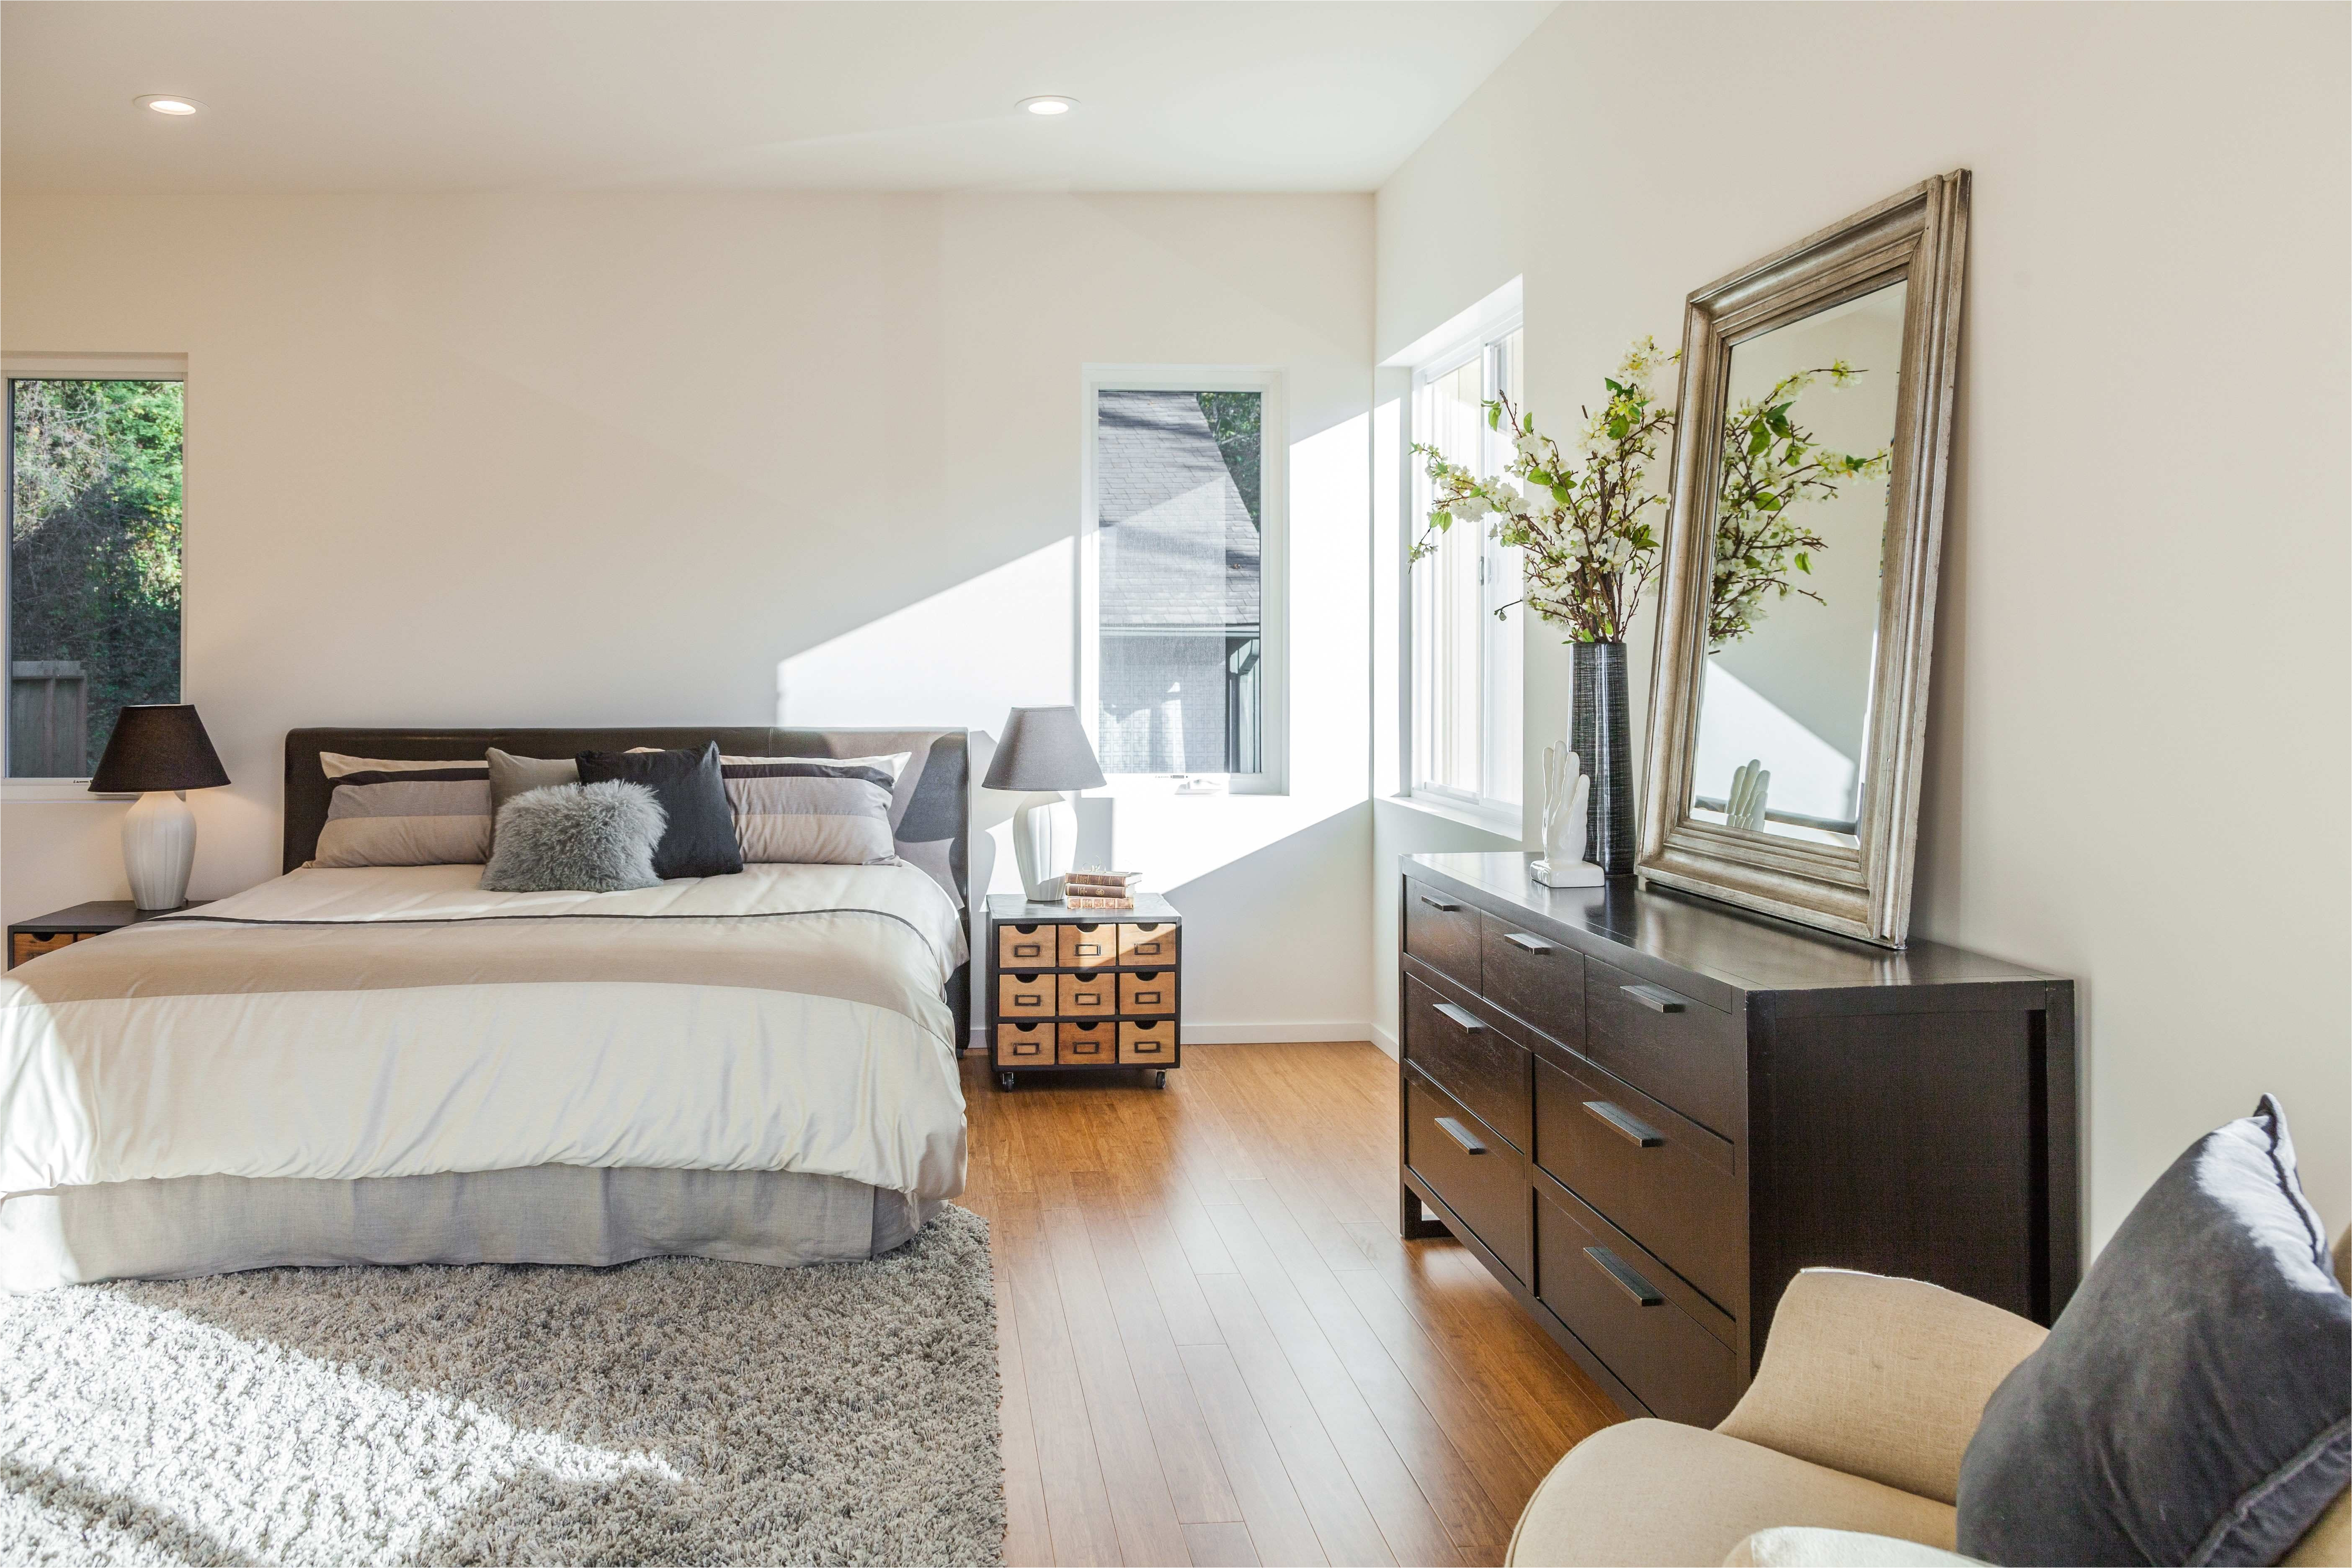 Chico Rooms for Rent Craigslist 39 New Craigslist 1 Bedroom Apartments top Bedroom Ideas